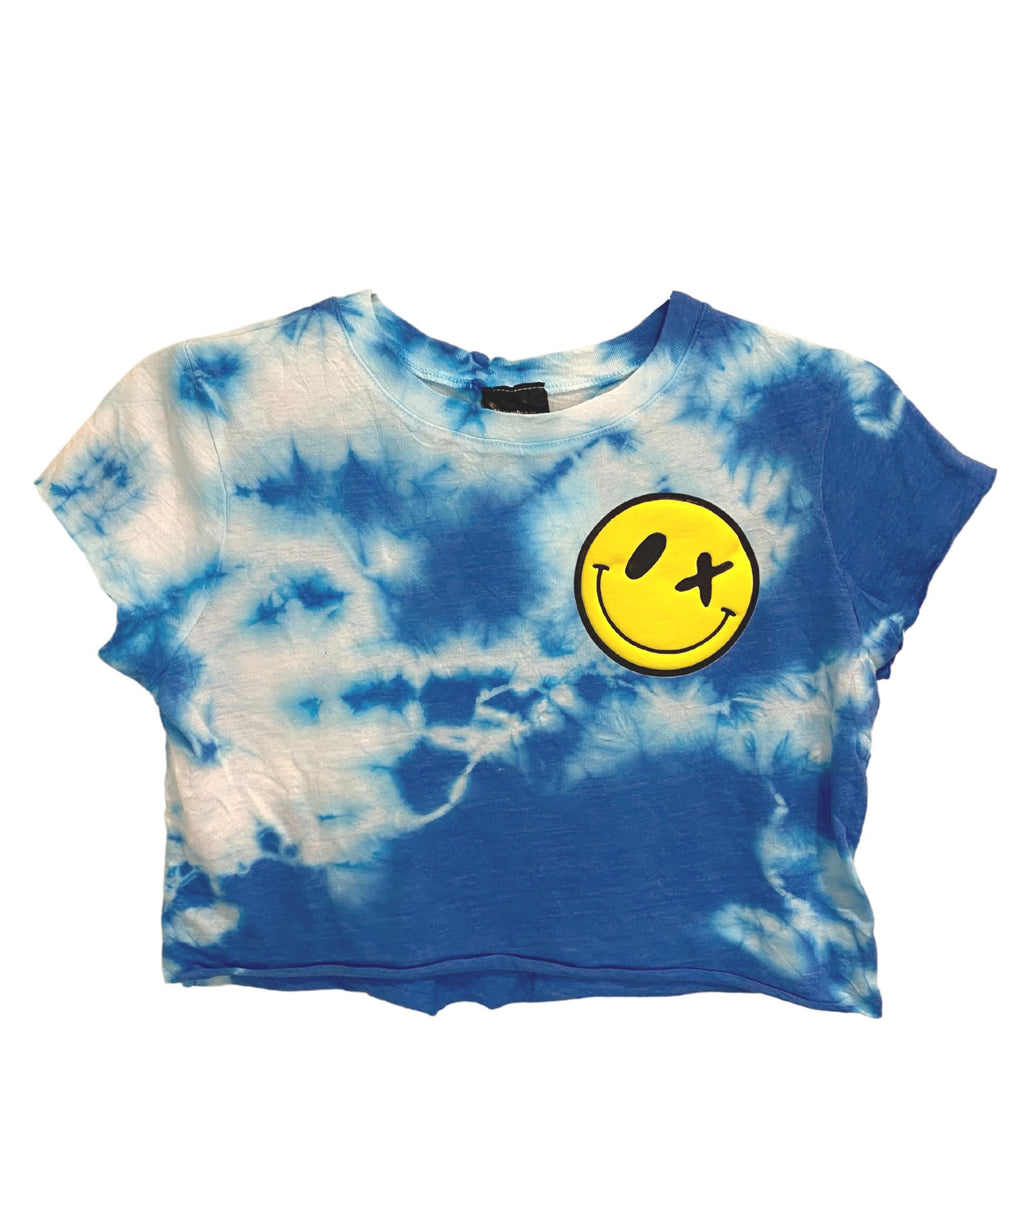 Love Junkie Girls Malibu Tie Dye Crop Tee Puff Smile